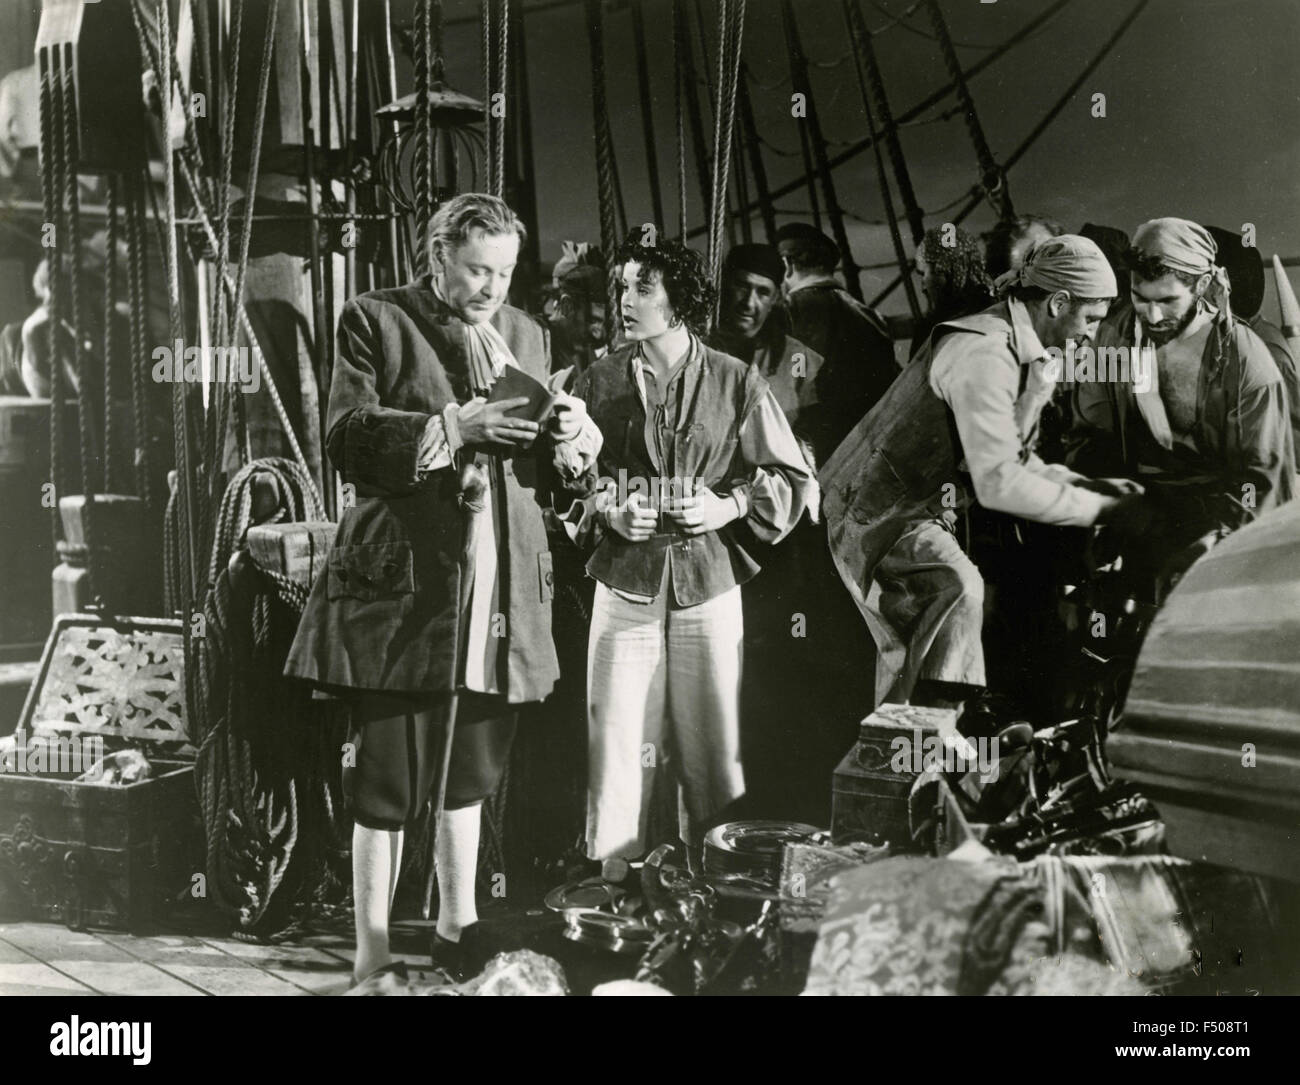 The actors Herbert Marshall and Jean Peters in a scene from the film 'Anne of the Indies', USA 1951 - Stock Image